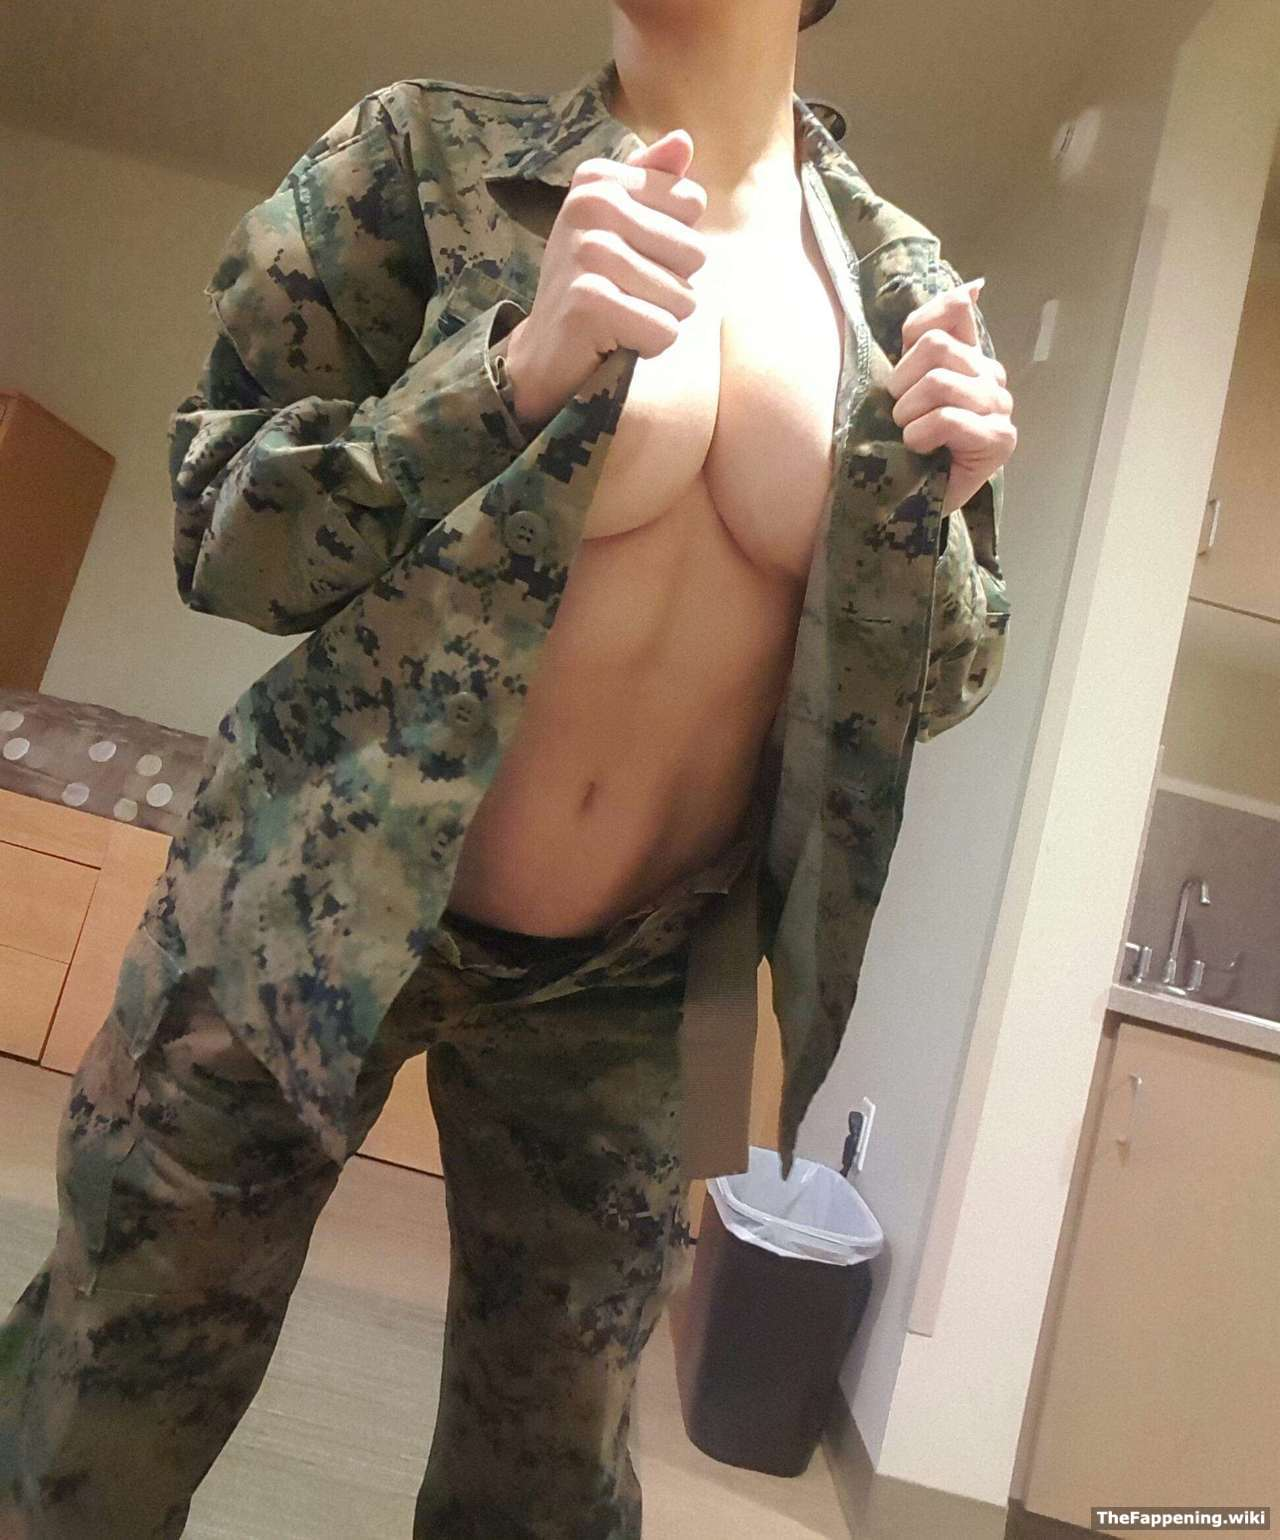 Most military wives nude agree, she